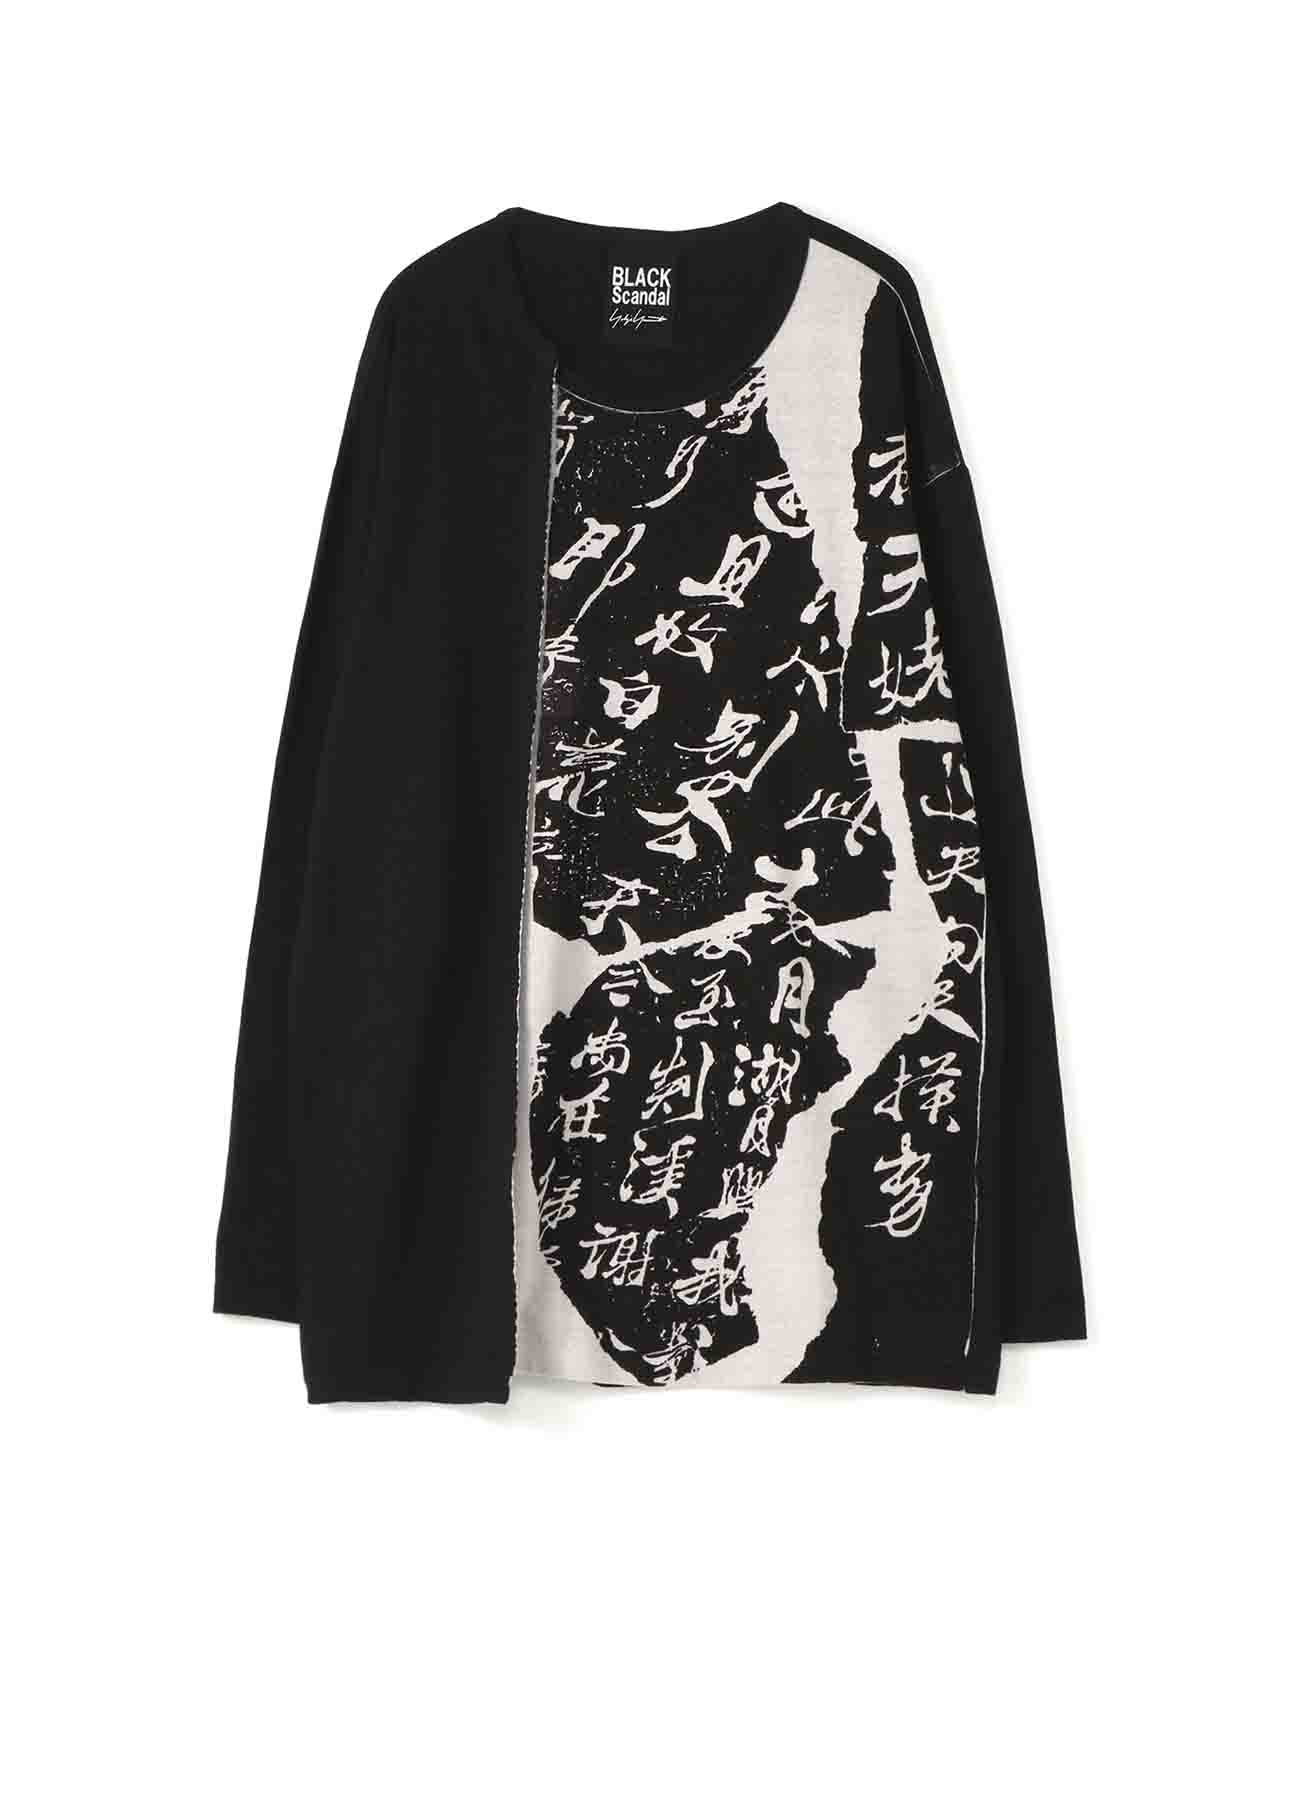 YARN DYE 16/- KANJI PRINT LAYER LONG SLEEVES